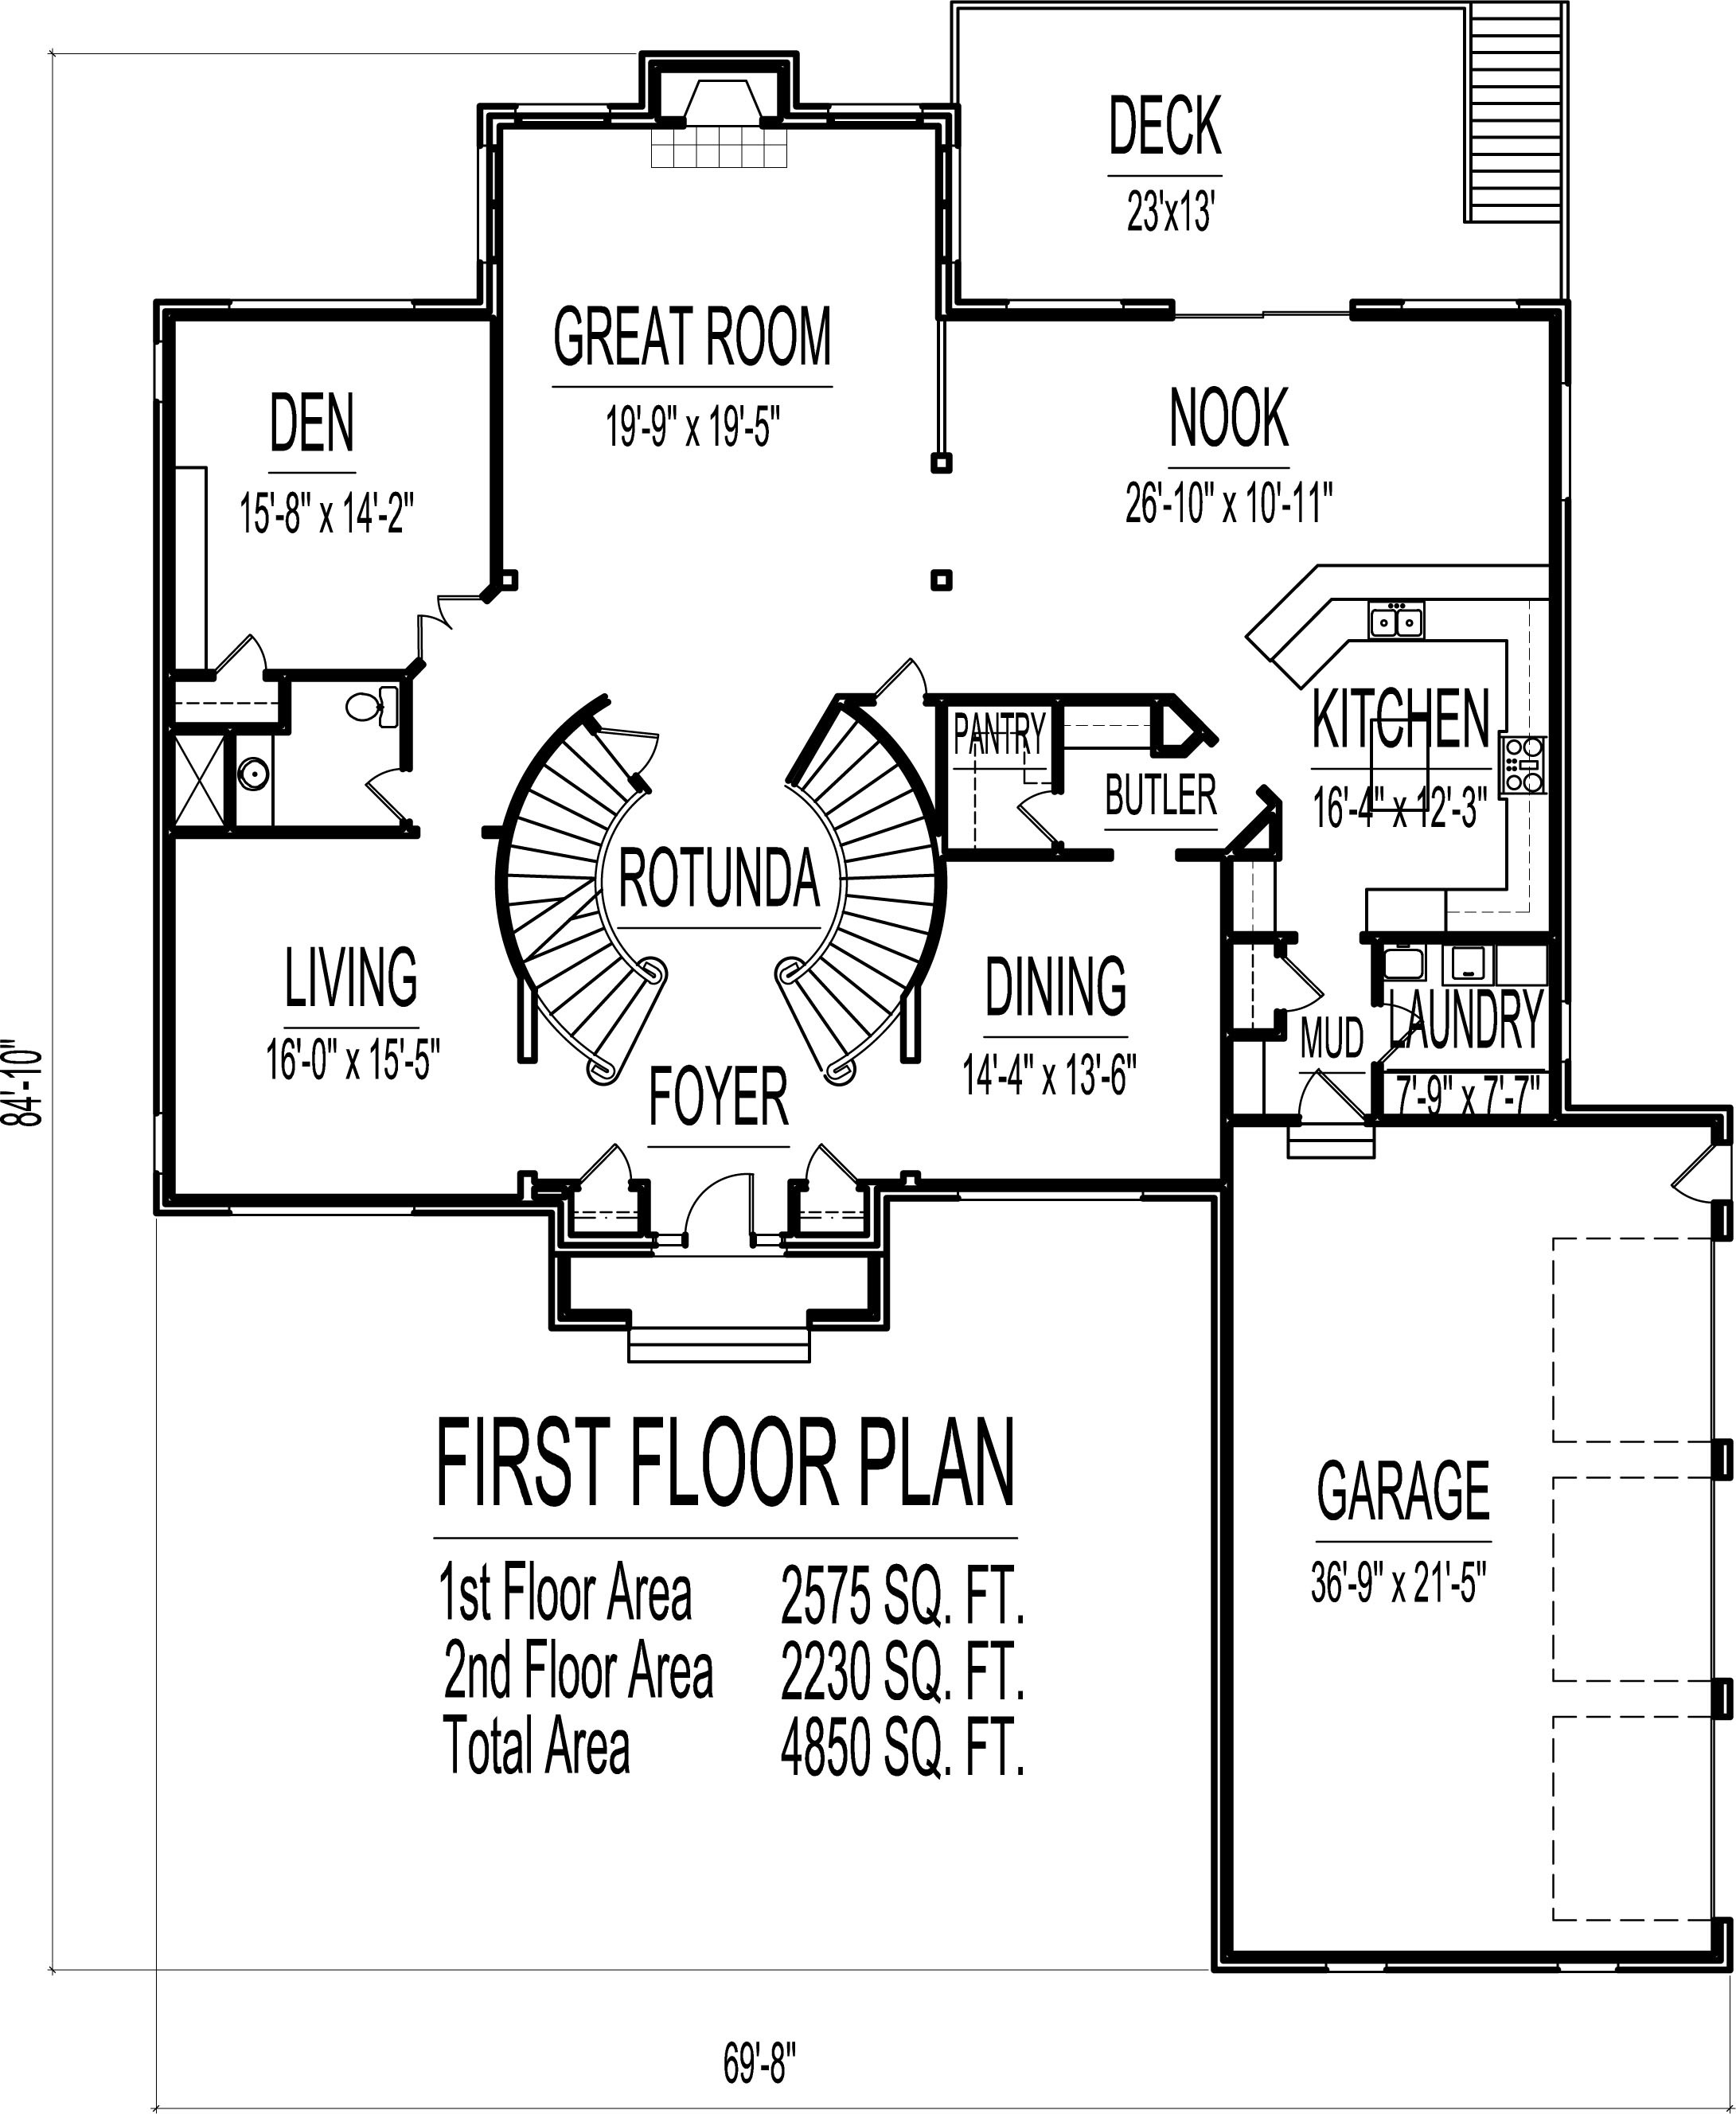 house plans 4 bedroom 2 story circular stair